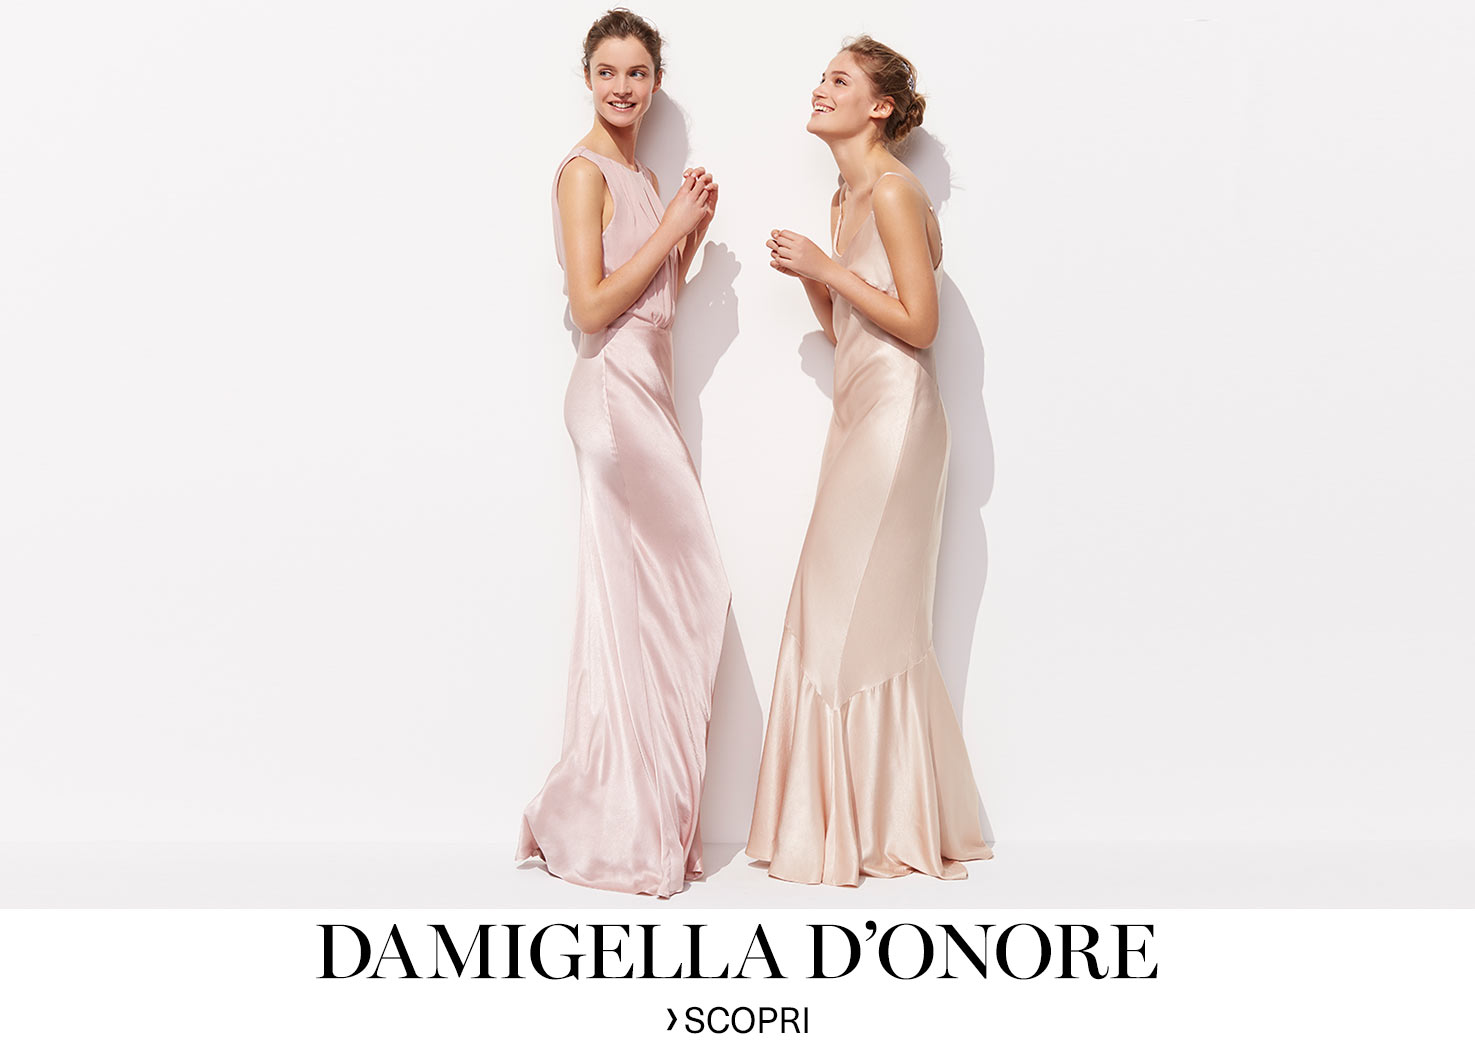 Damigella d'onore